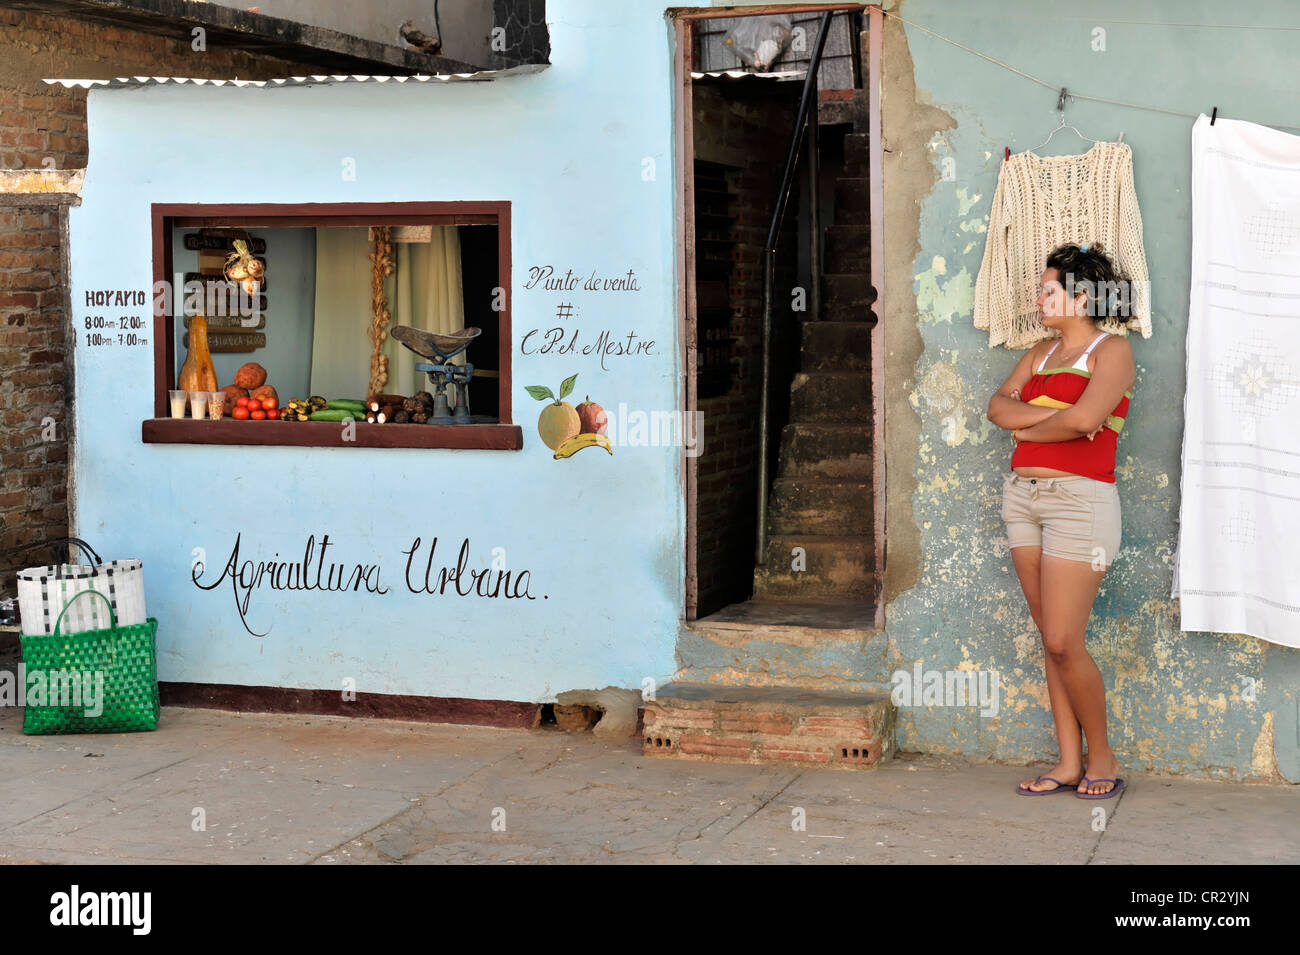 Agricultura Urbana, urban agriculture, small fruit and vegetable shop, Trinidad, Cuba, Greater Antilles, Caribbean - Stock Image